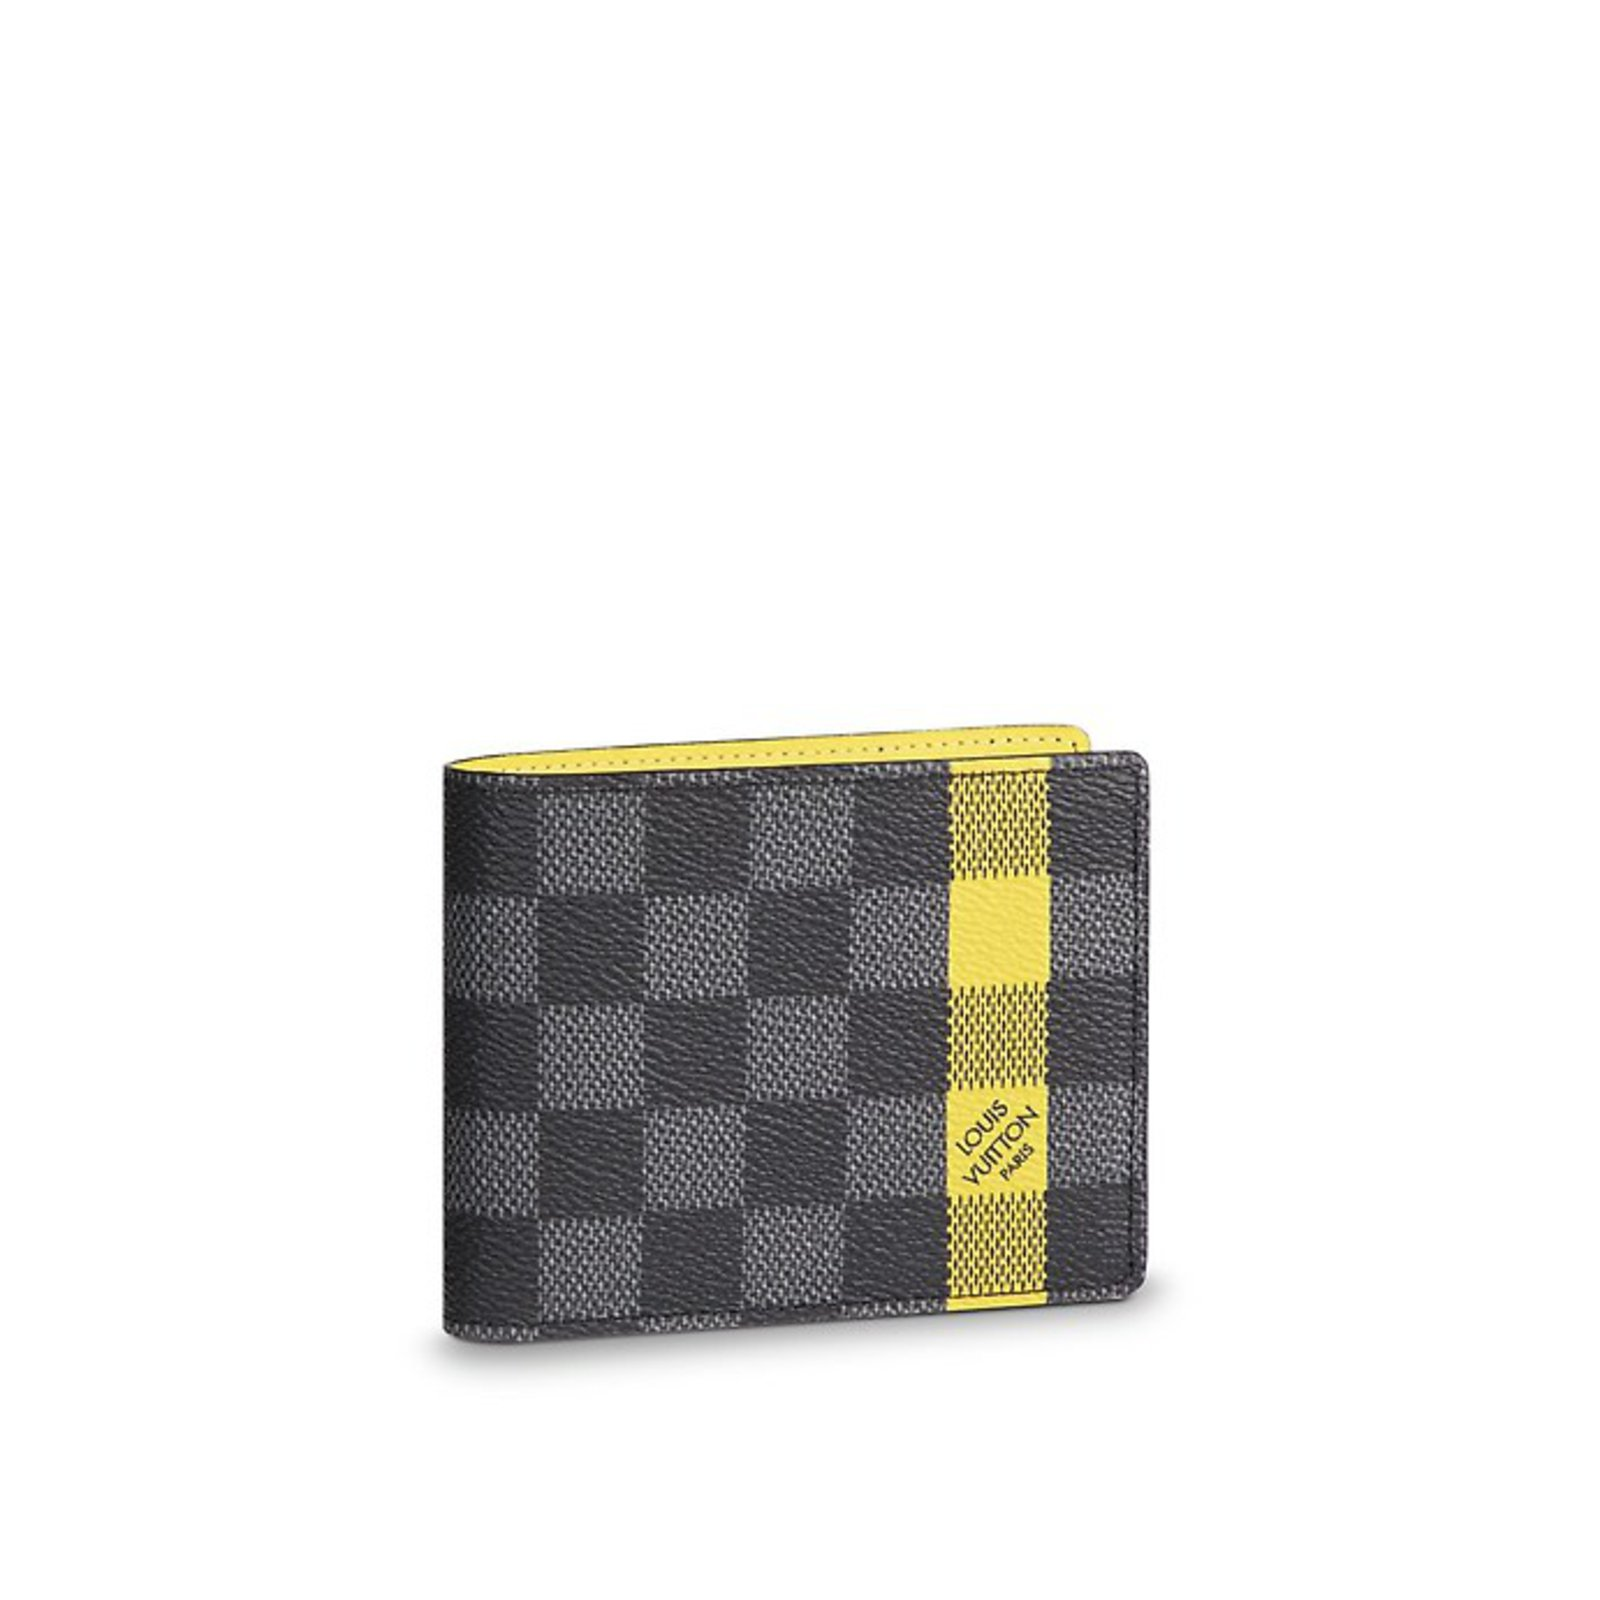 cb19214779 Louis Vuitton Slender mens wallet new Wallets Small accessories ...